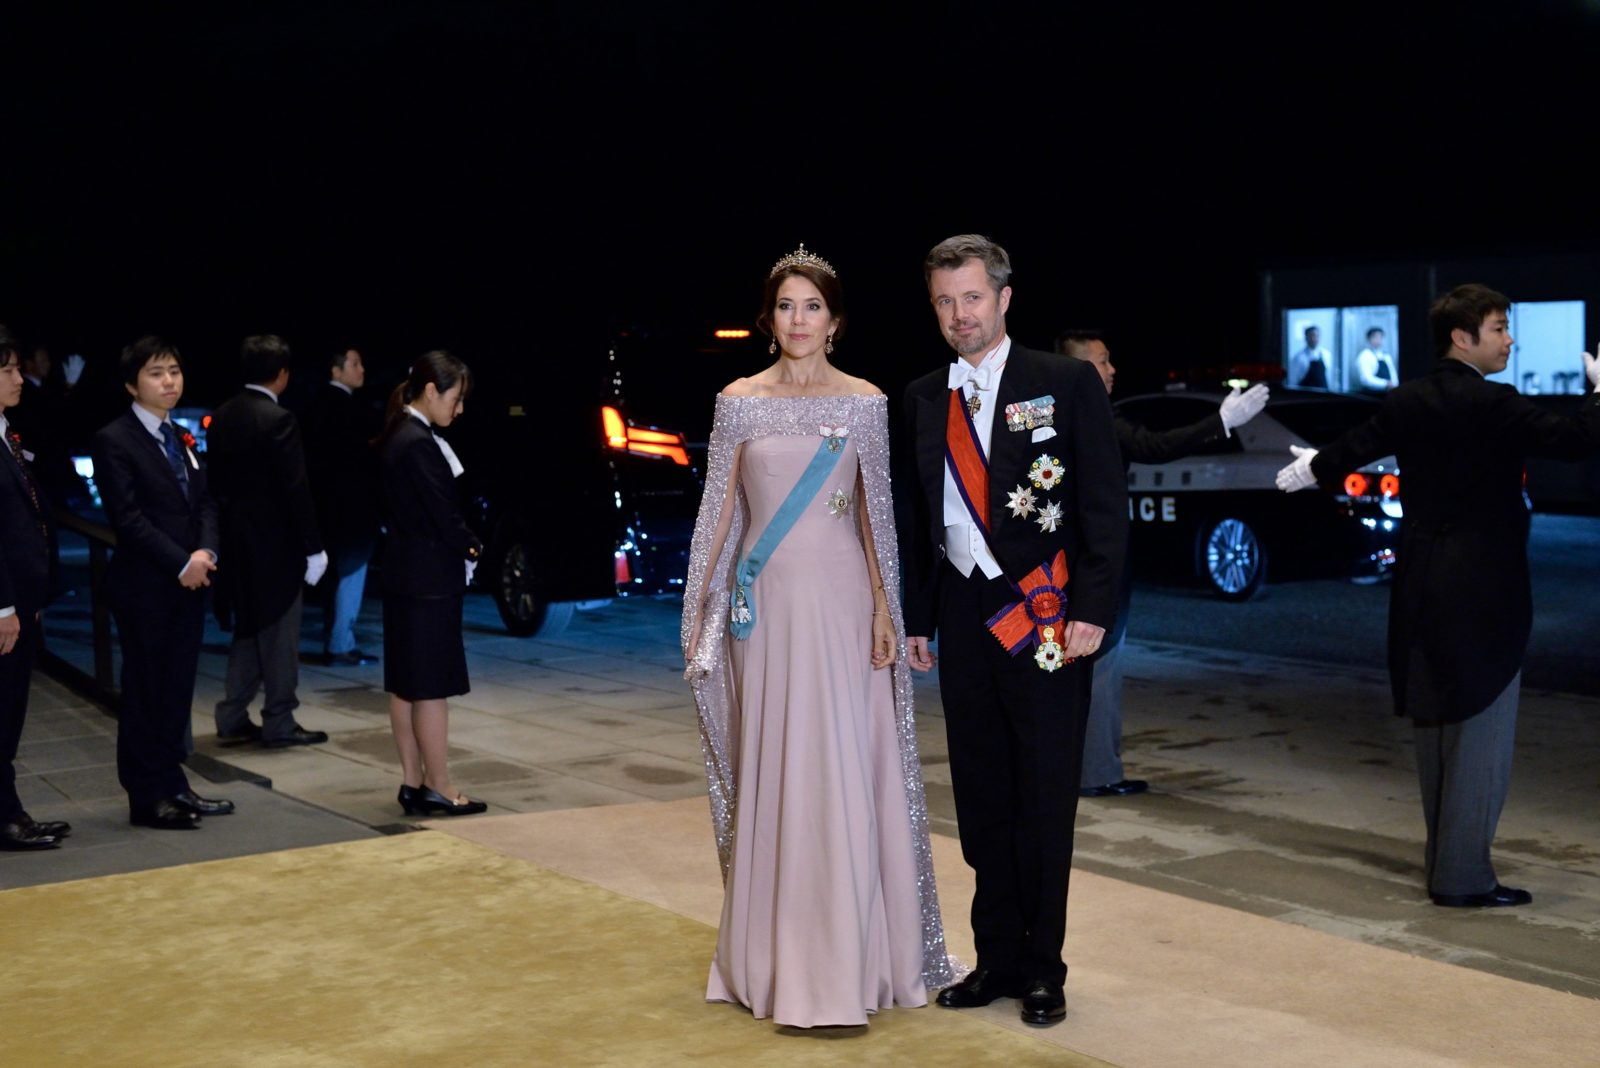 Princess Mary swapped into a dazzling ball gown for the evening at the Imperial Palace. Source: Getty.